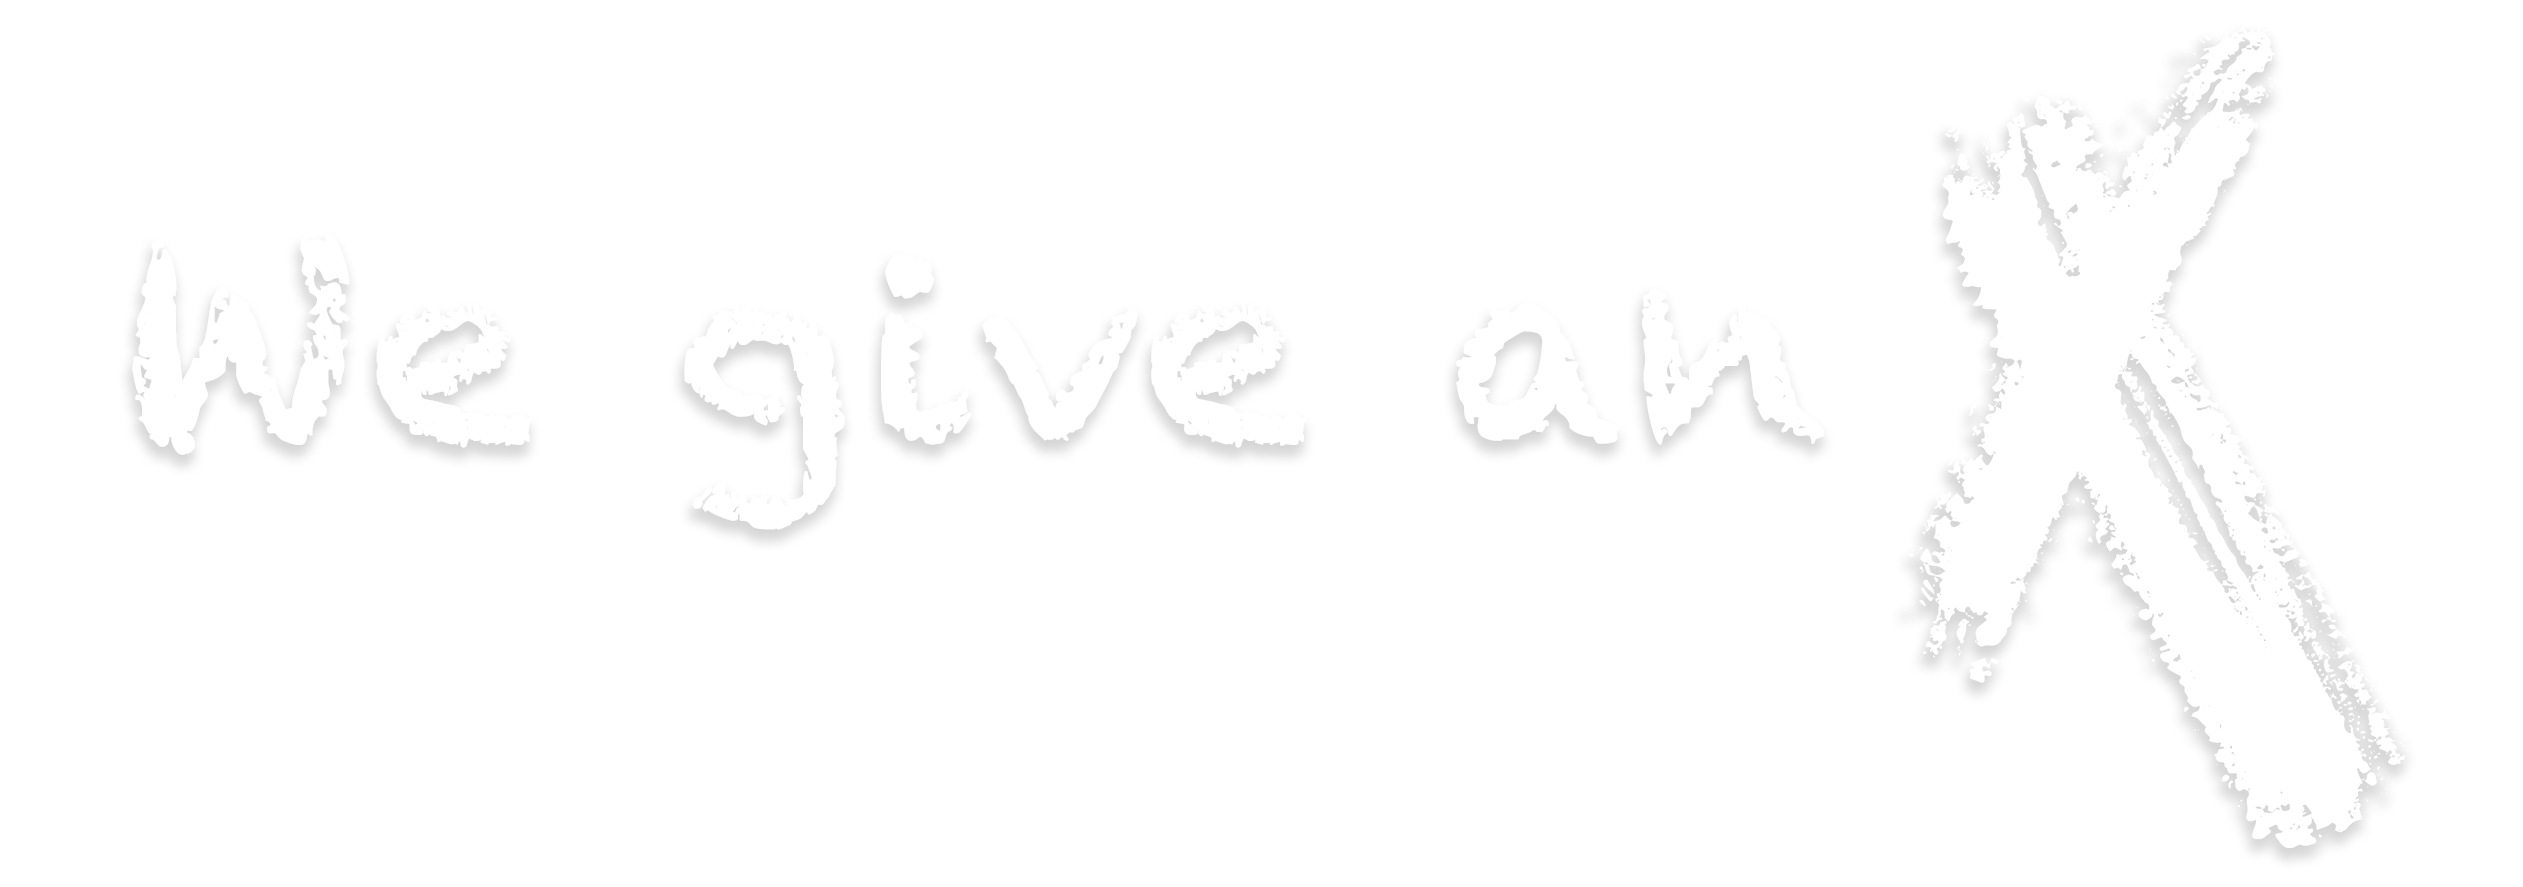 Heder image saying 'we give an X, encouraging people to vote in the 12 december general election